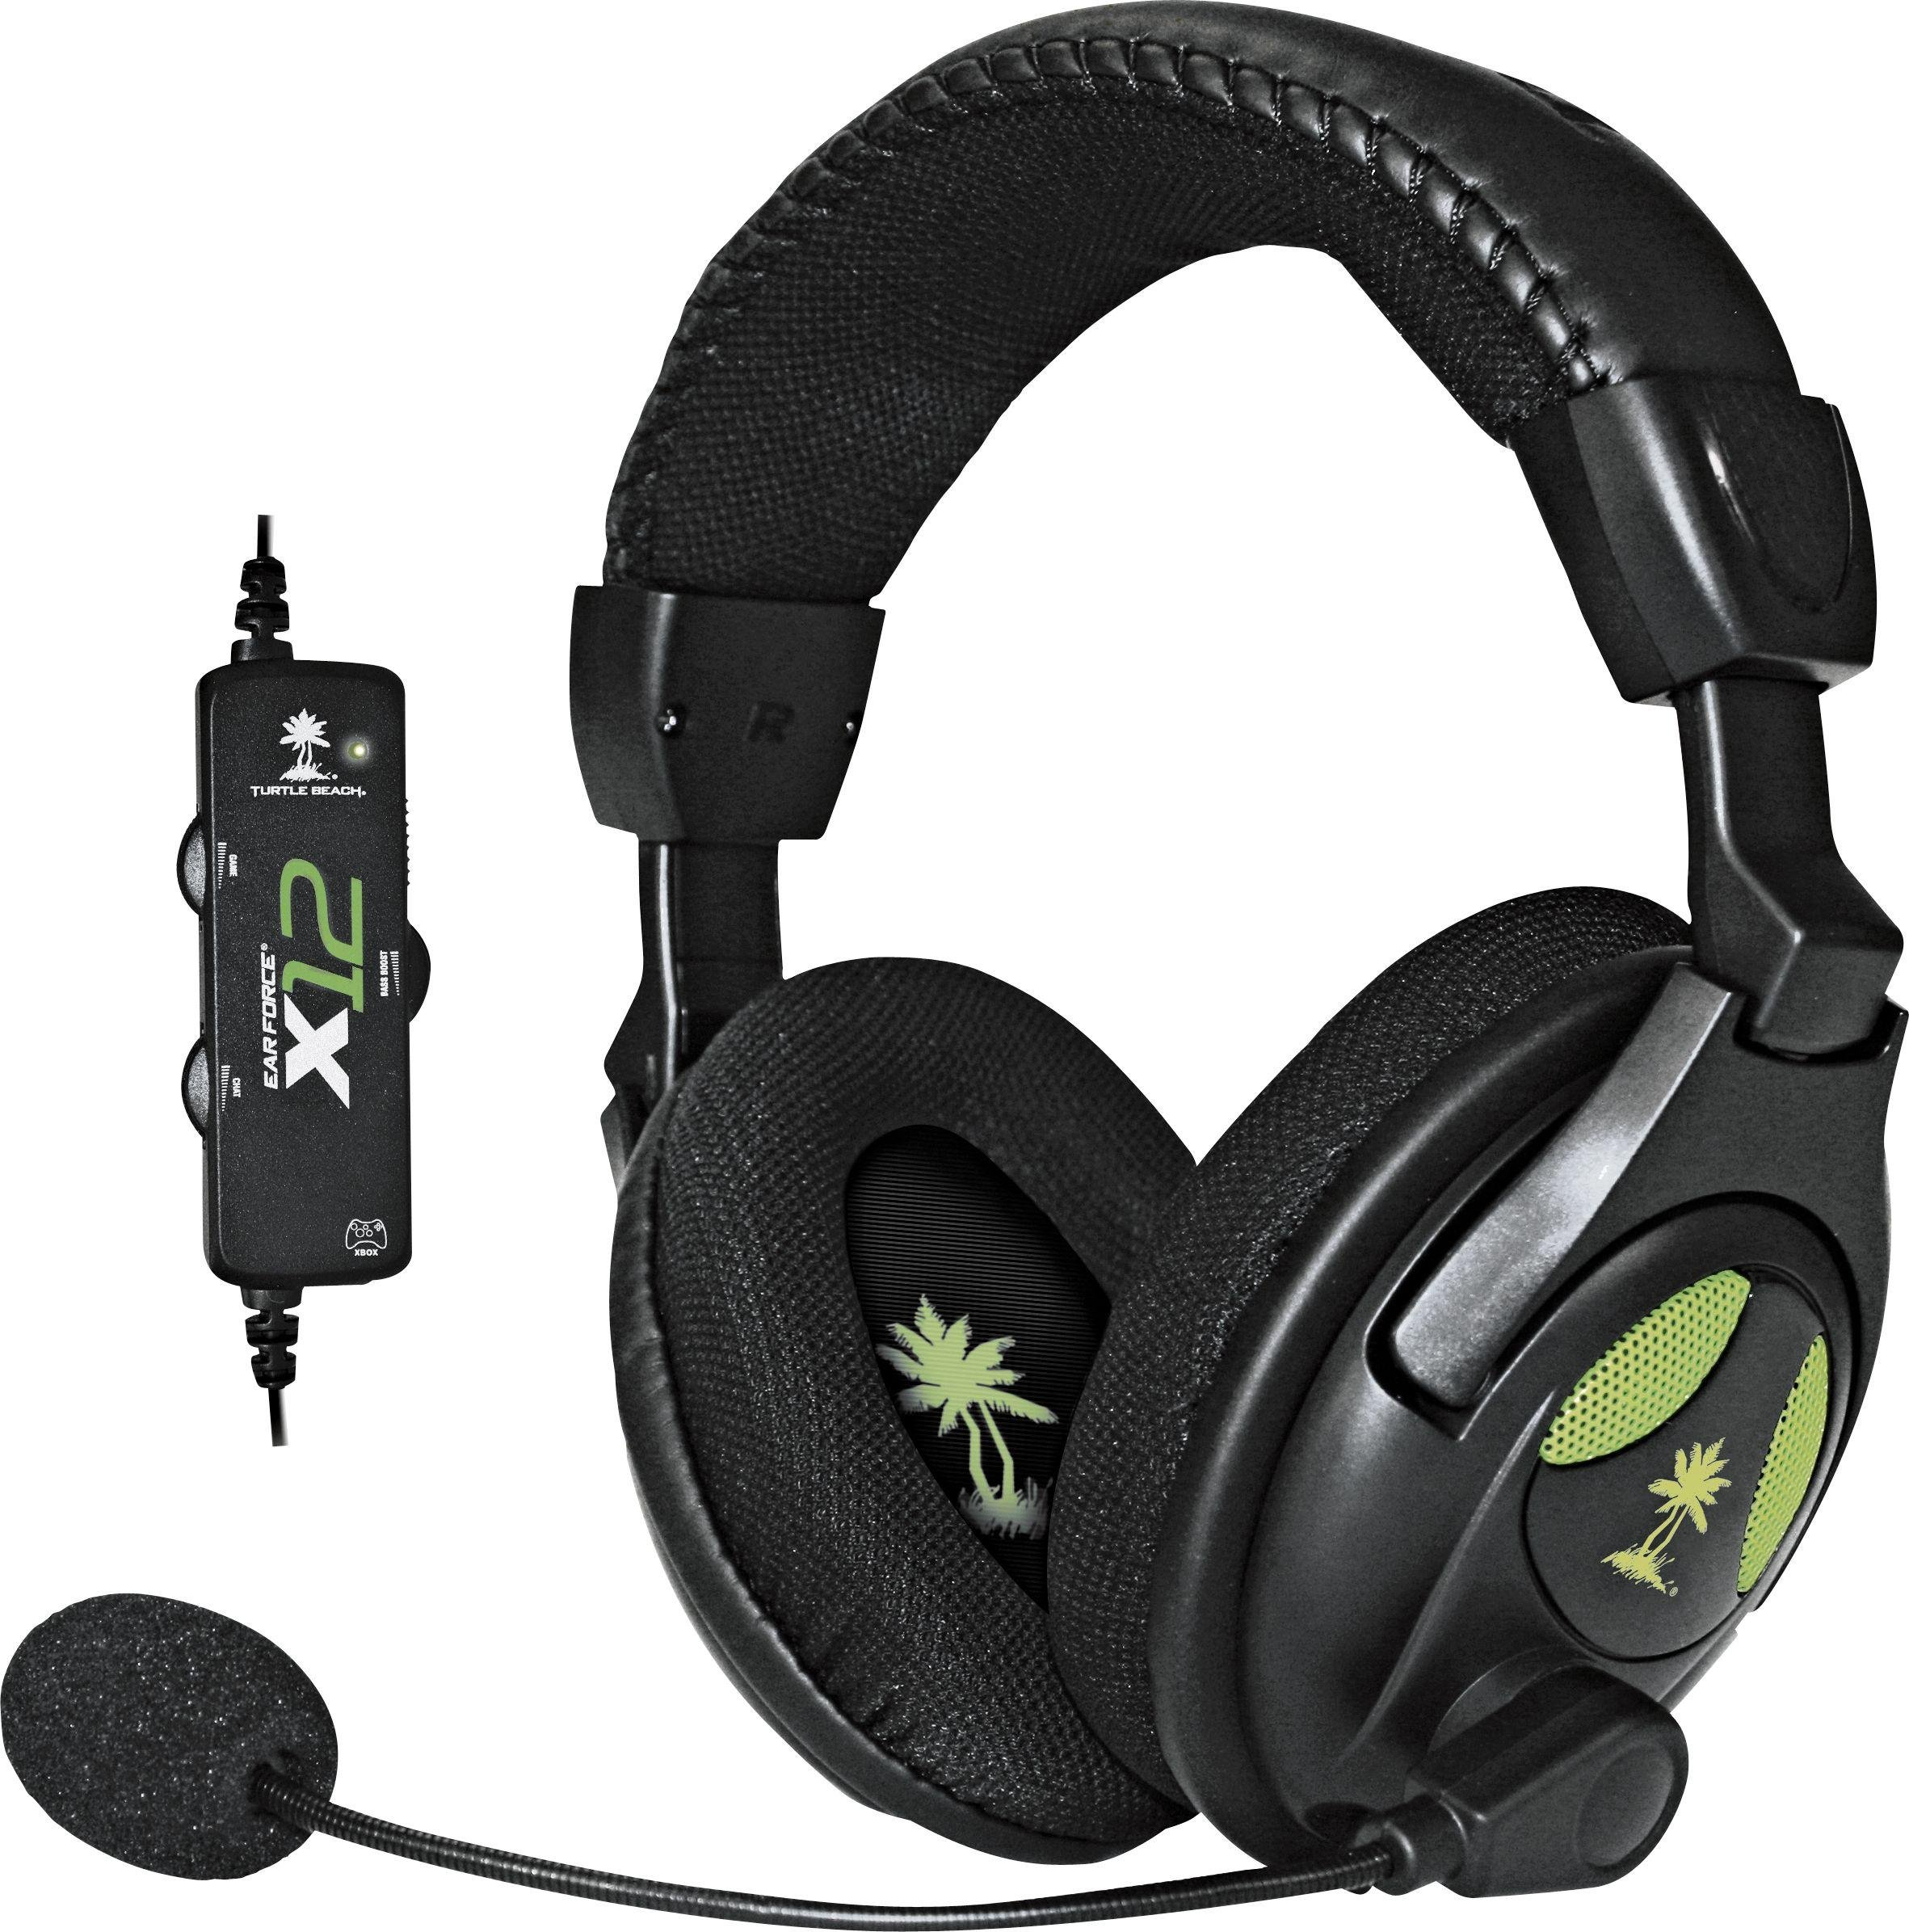 'Turtle Beach X12 Gaming Headset For Xbox 360 & Pc.